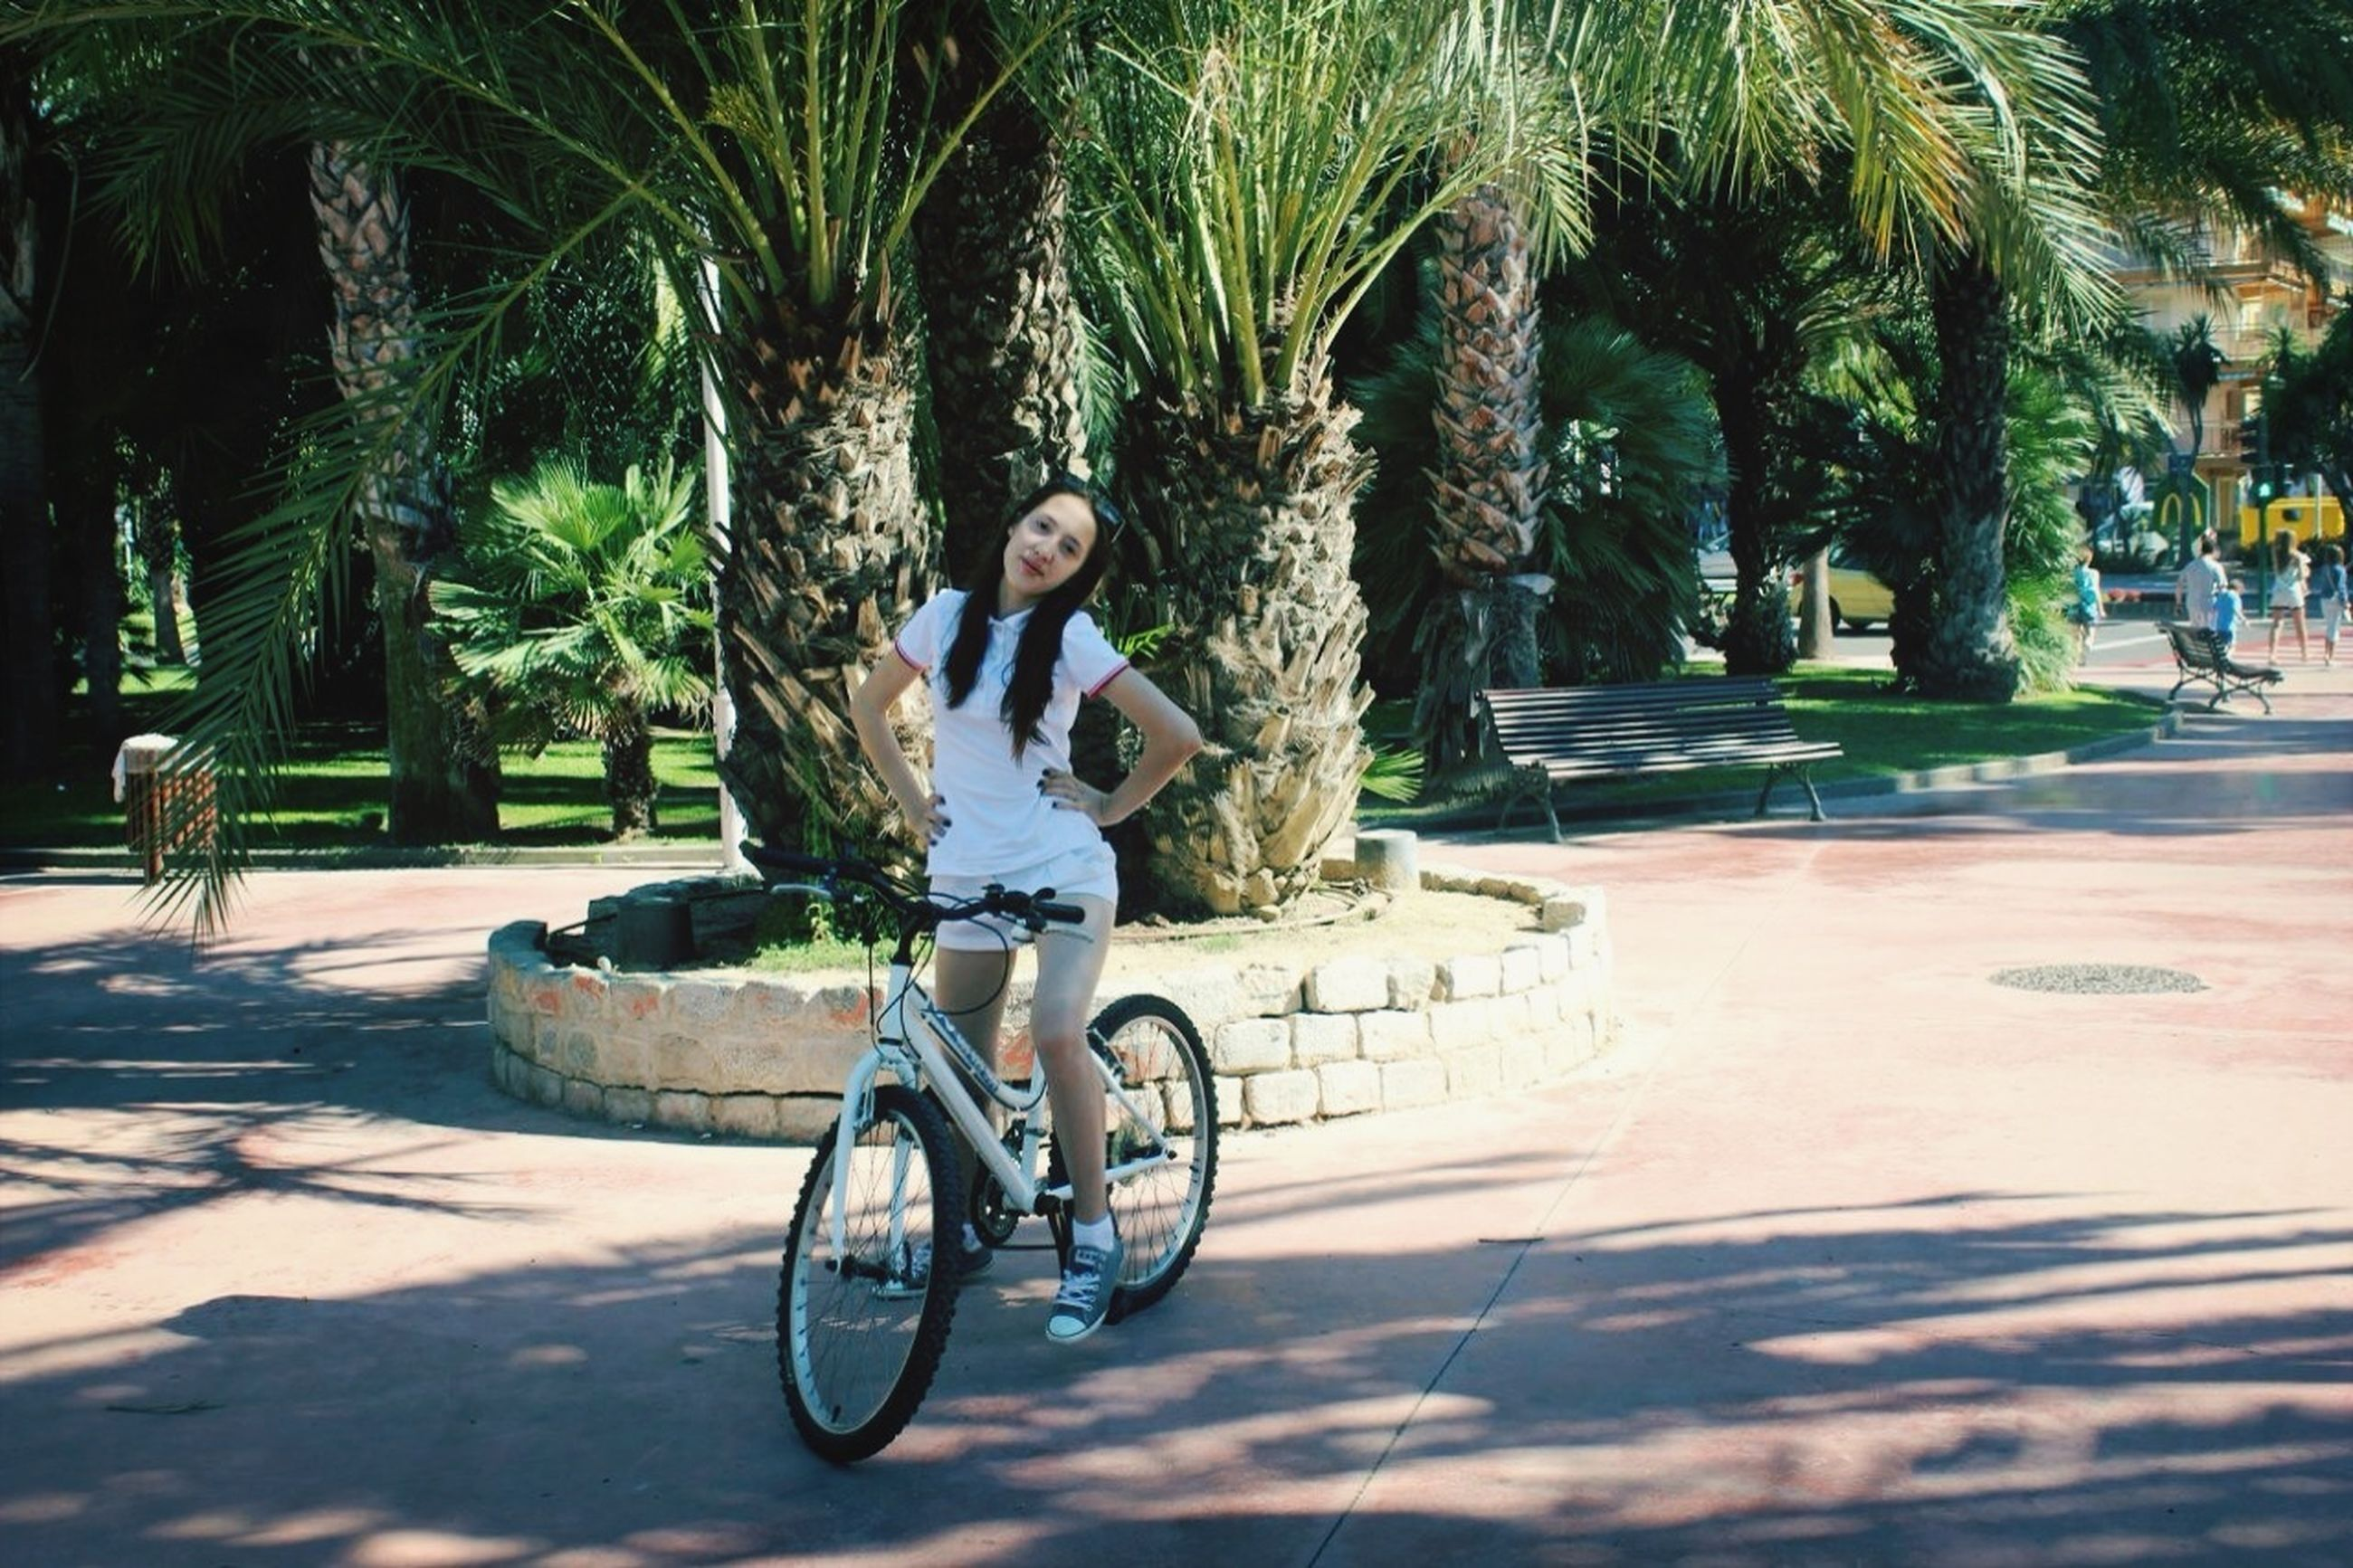 bicycle, tree, transportation, mode of transport, land vehicle, street, riding, lifestyles, full length, leisure activity, road, outdoors, men, stationary, parking, building exterior, sunlight, incidental people